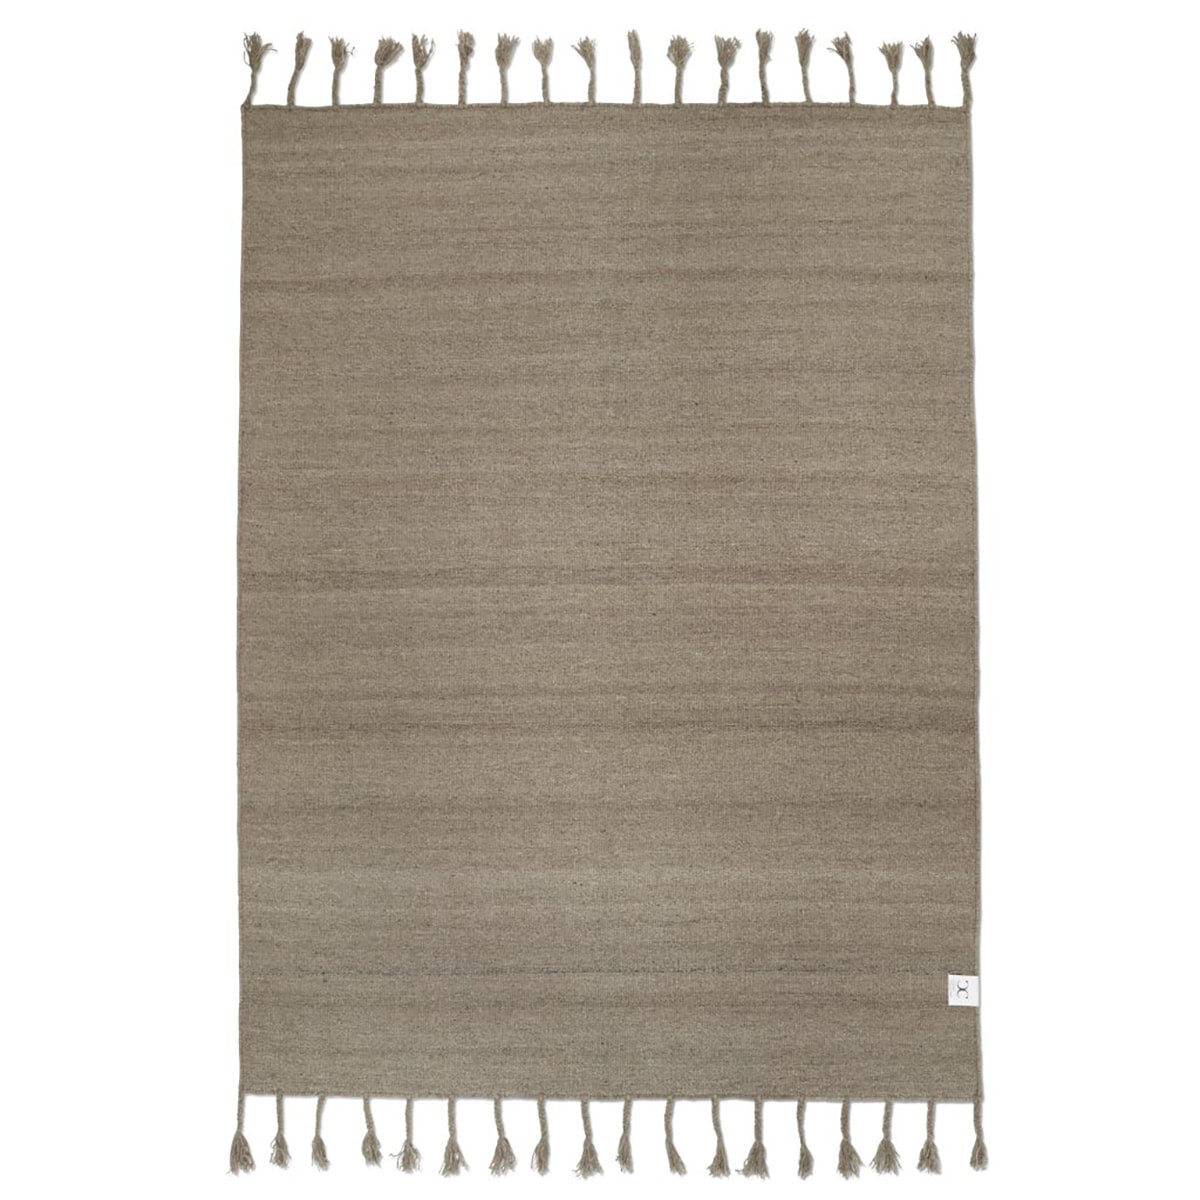 Matta Plain från Classic Collection, Beige